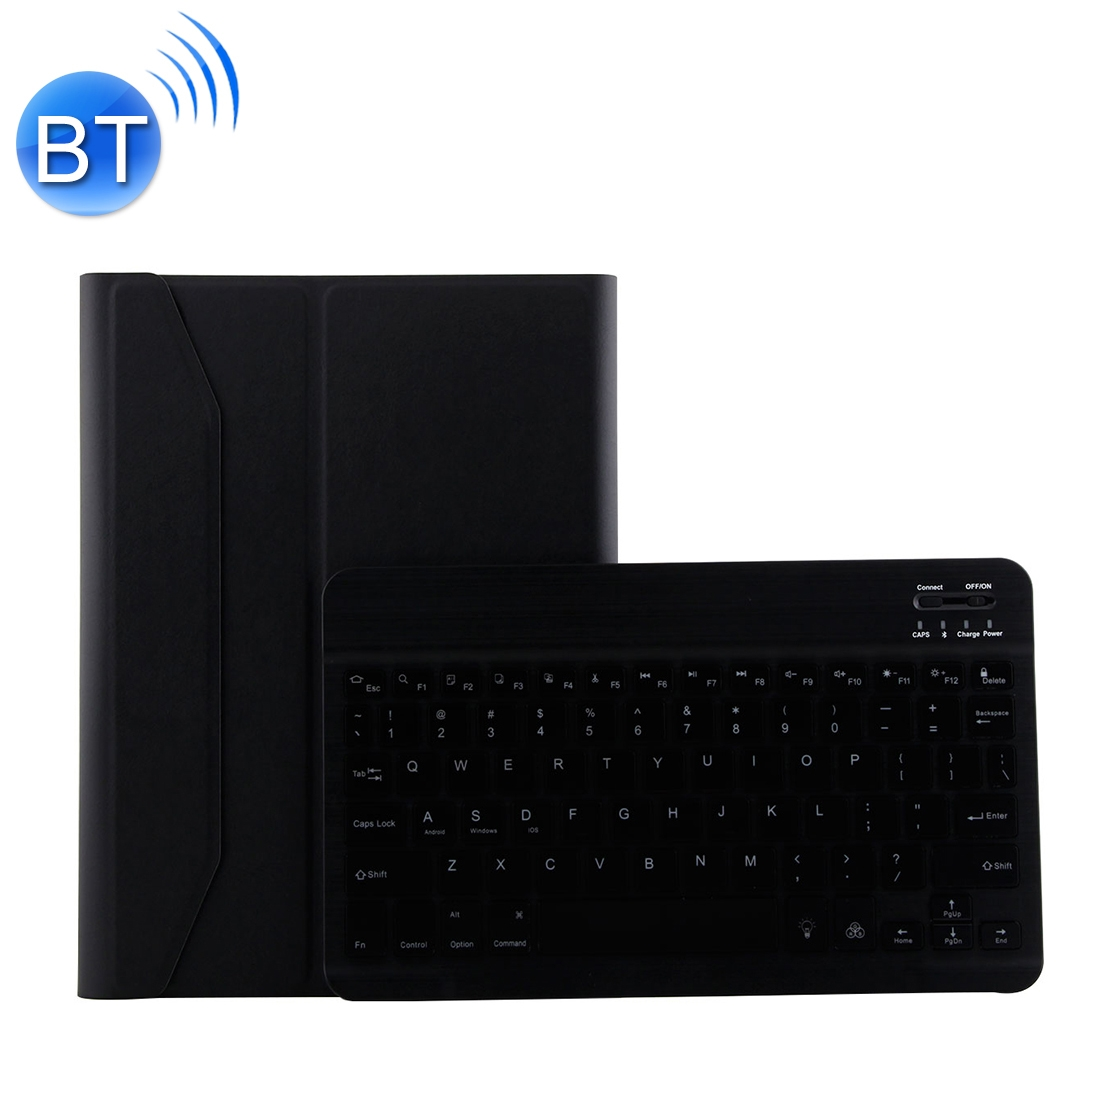 iPad Air 2 Case With Keyboard With Leather Case For iPad Air/Air 2/Pro 9.7 inch  (Black)